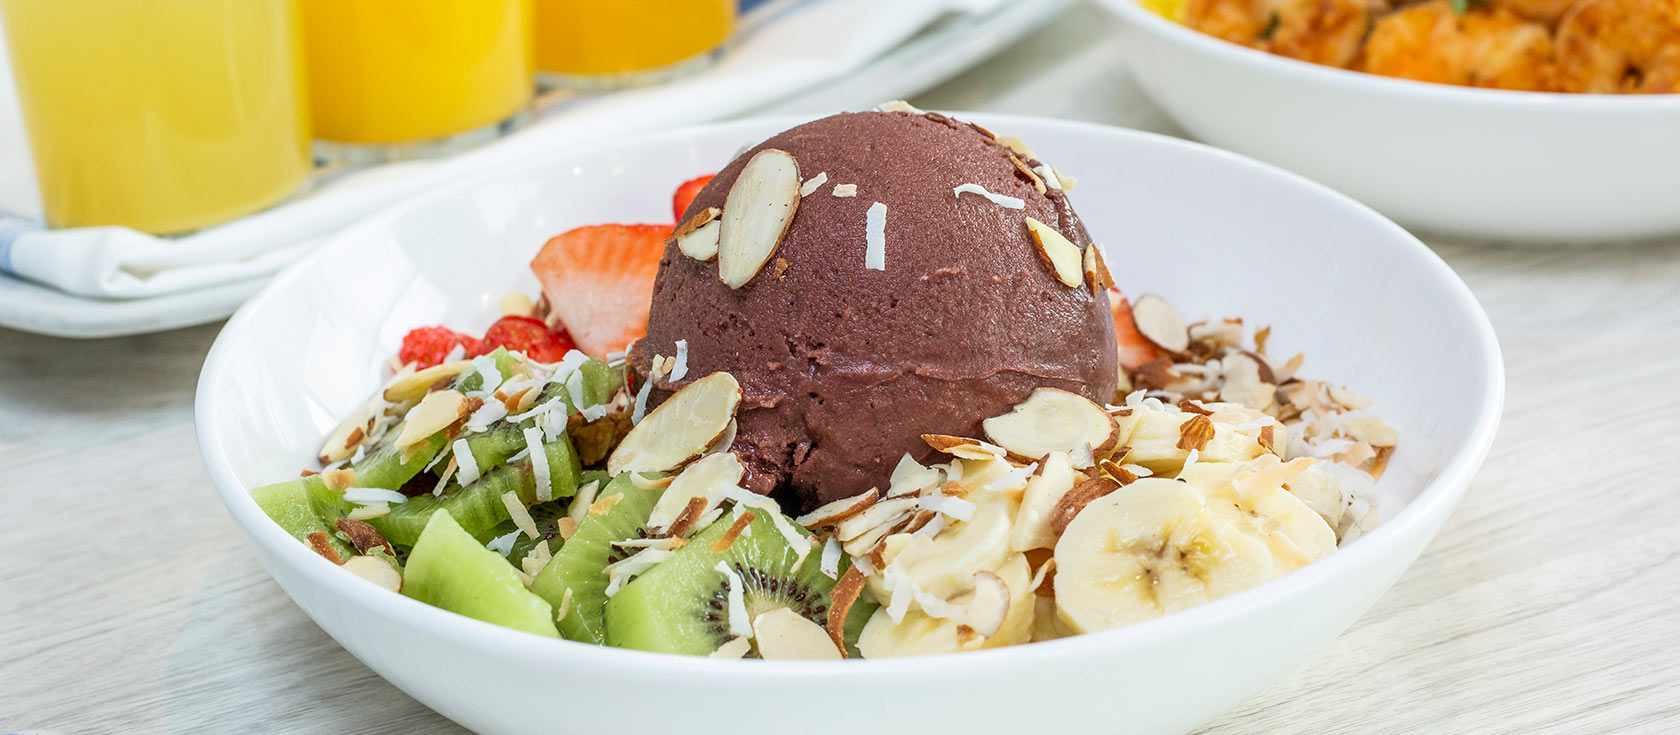 Manele acas bowl with sliced bananas and strawberries